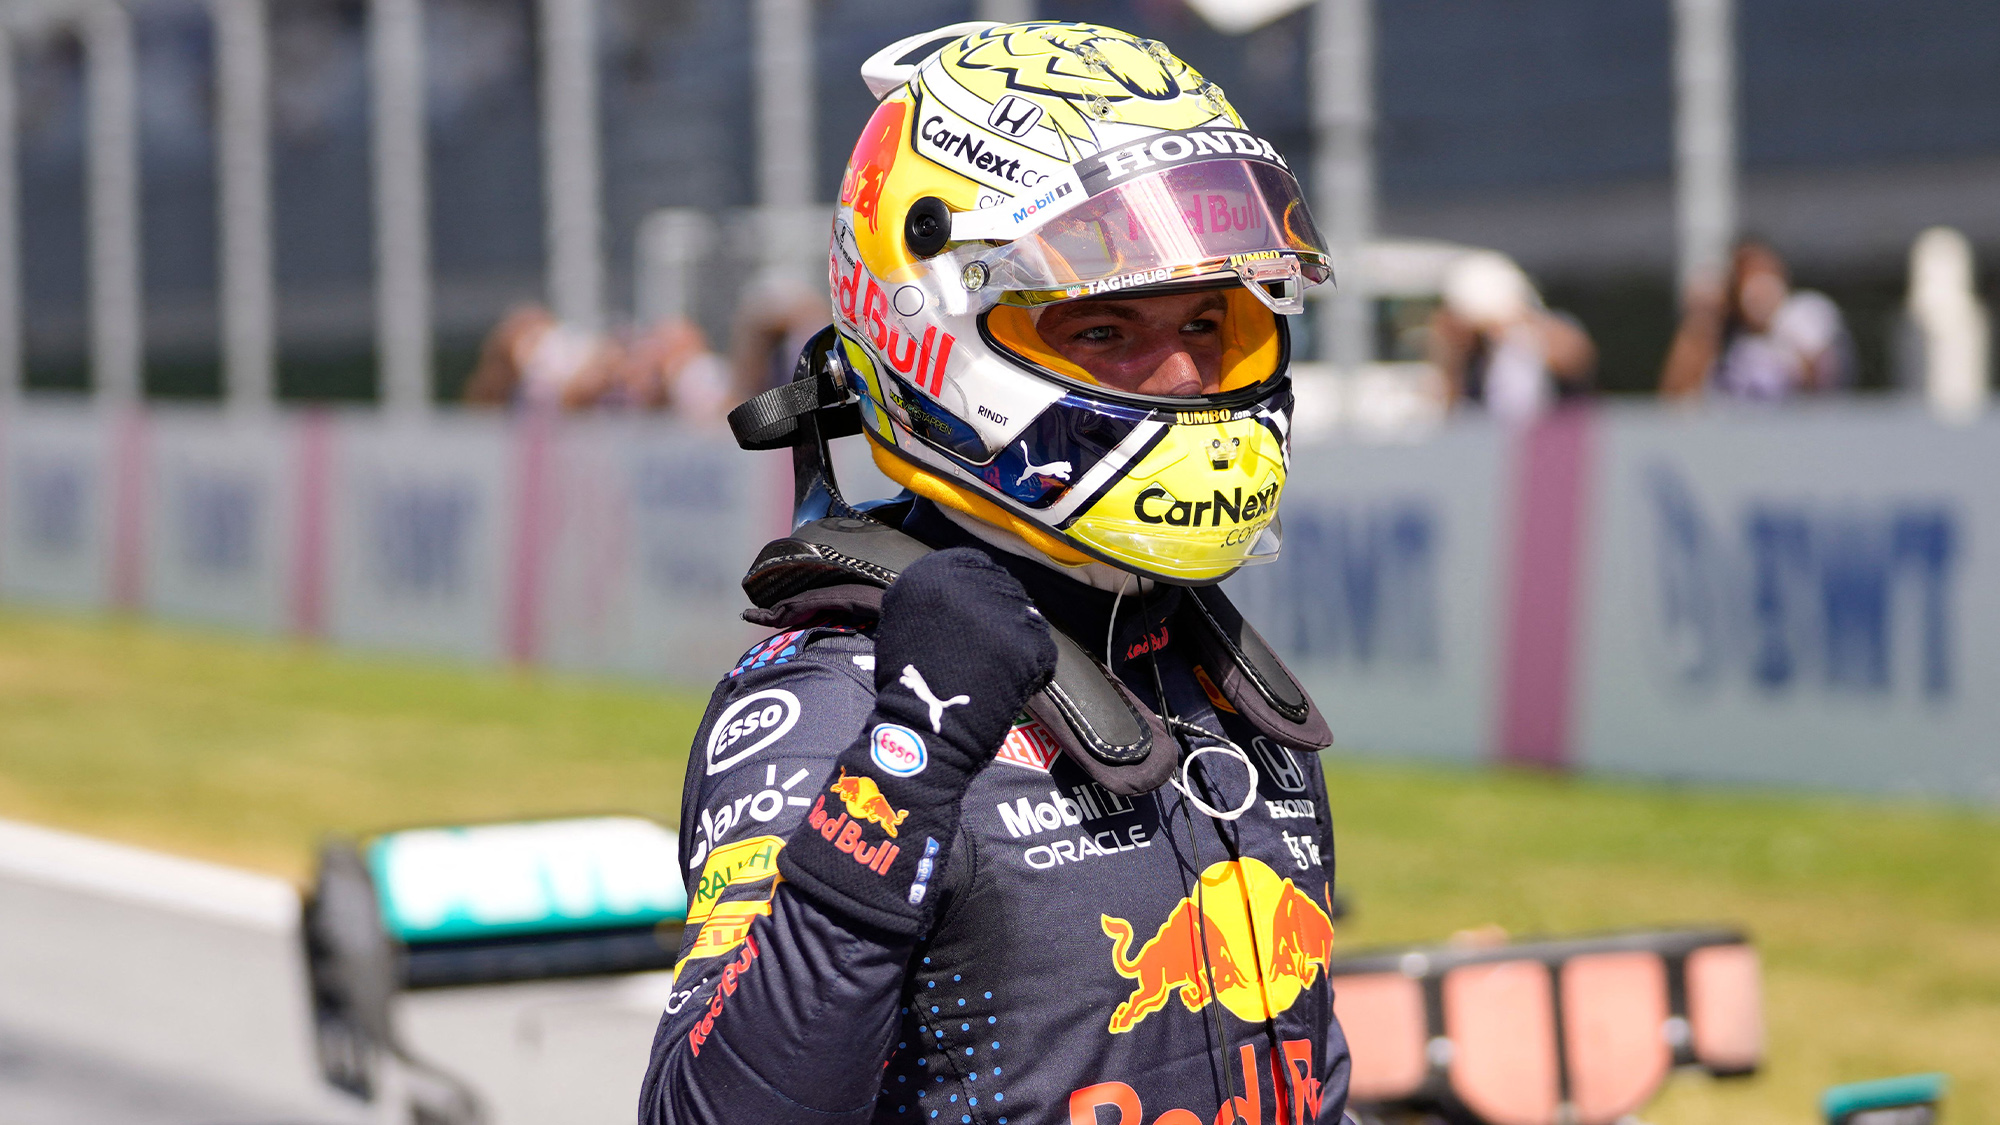 Max Verstappen celebrates pole position at the 2021 Styrian GP